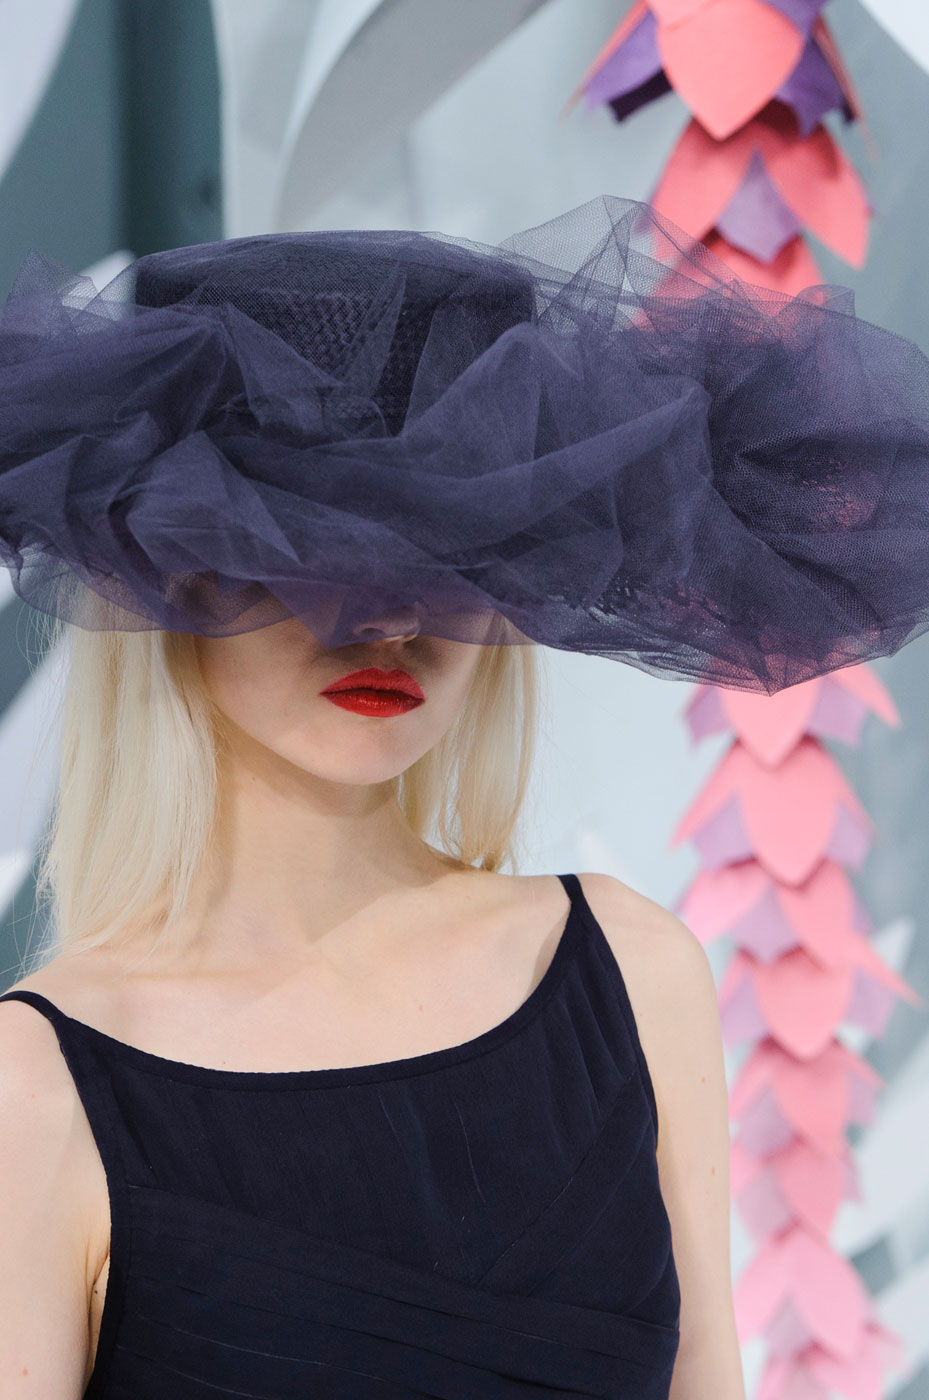 Chanel-fashion-runway-show-close-ups-haute-couture-paris-spring-summer-2015-the-impression-088